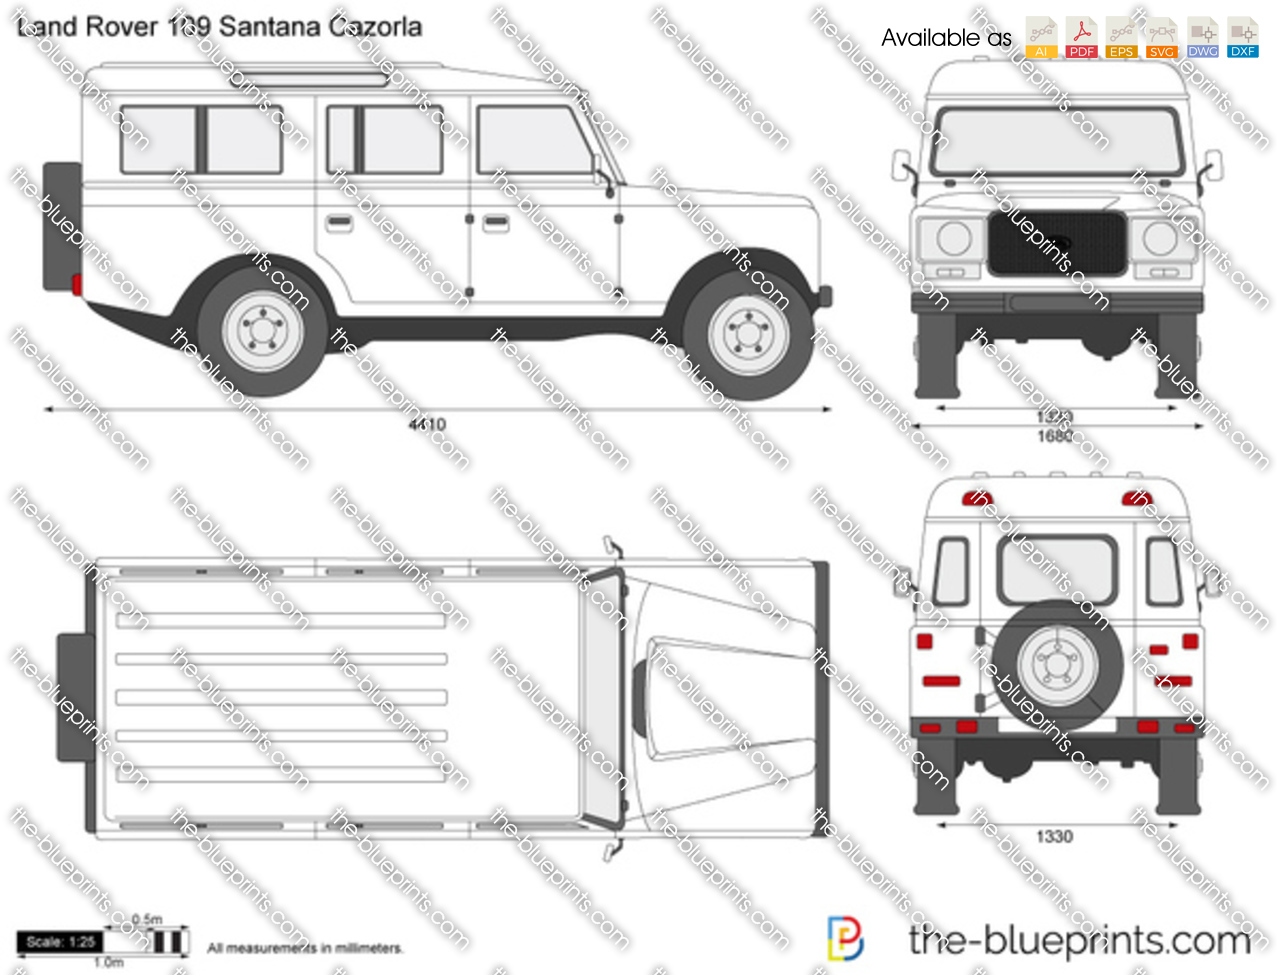 land rover 109 santana cazorla vector drawing